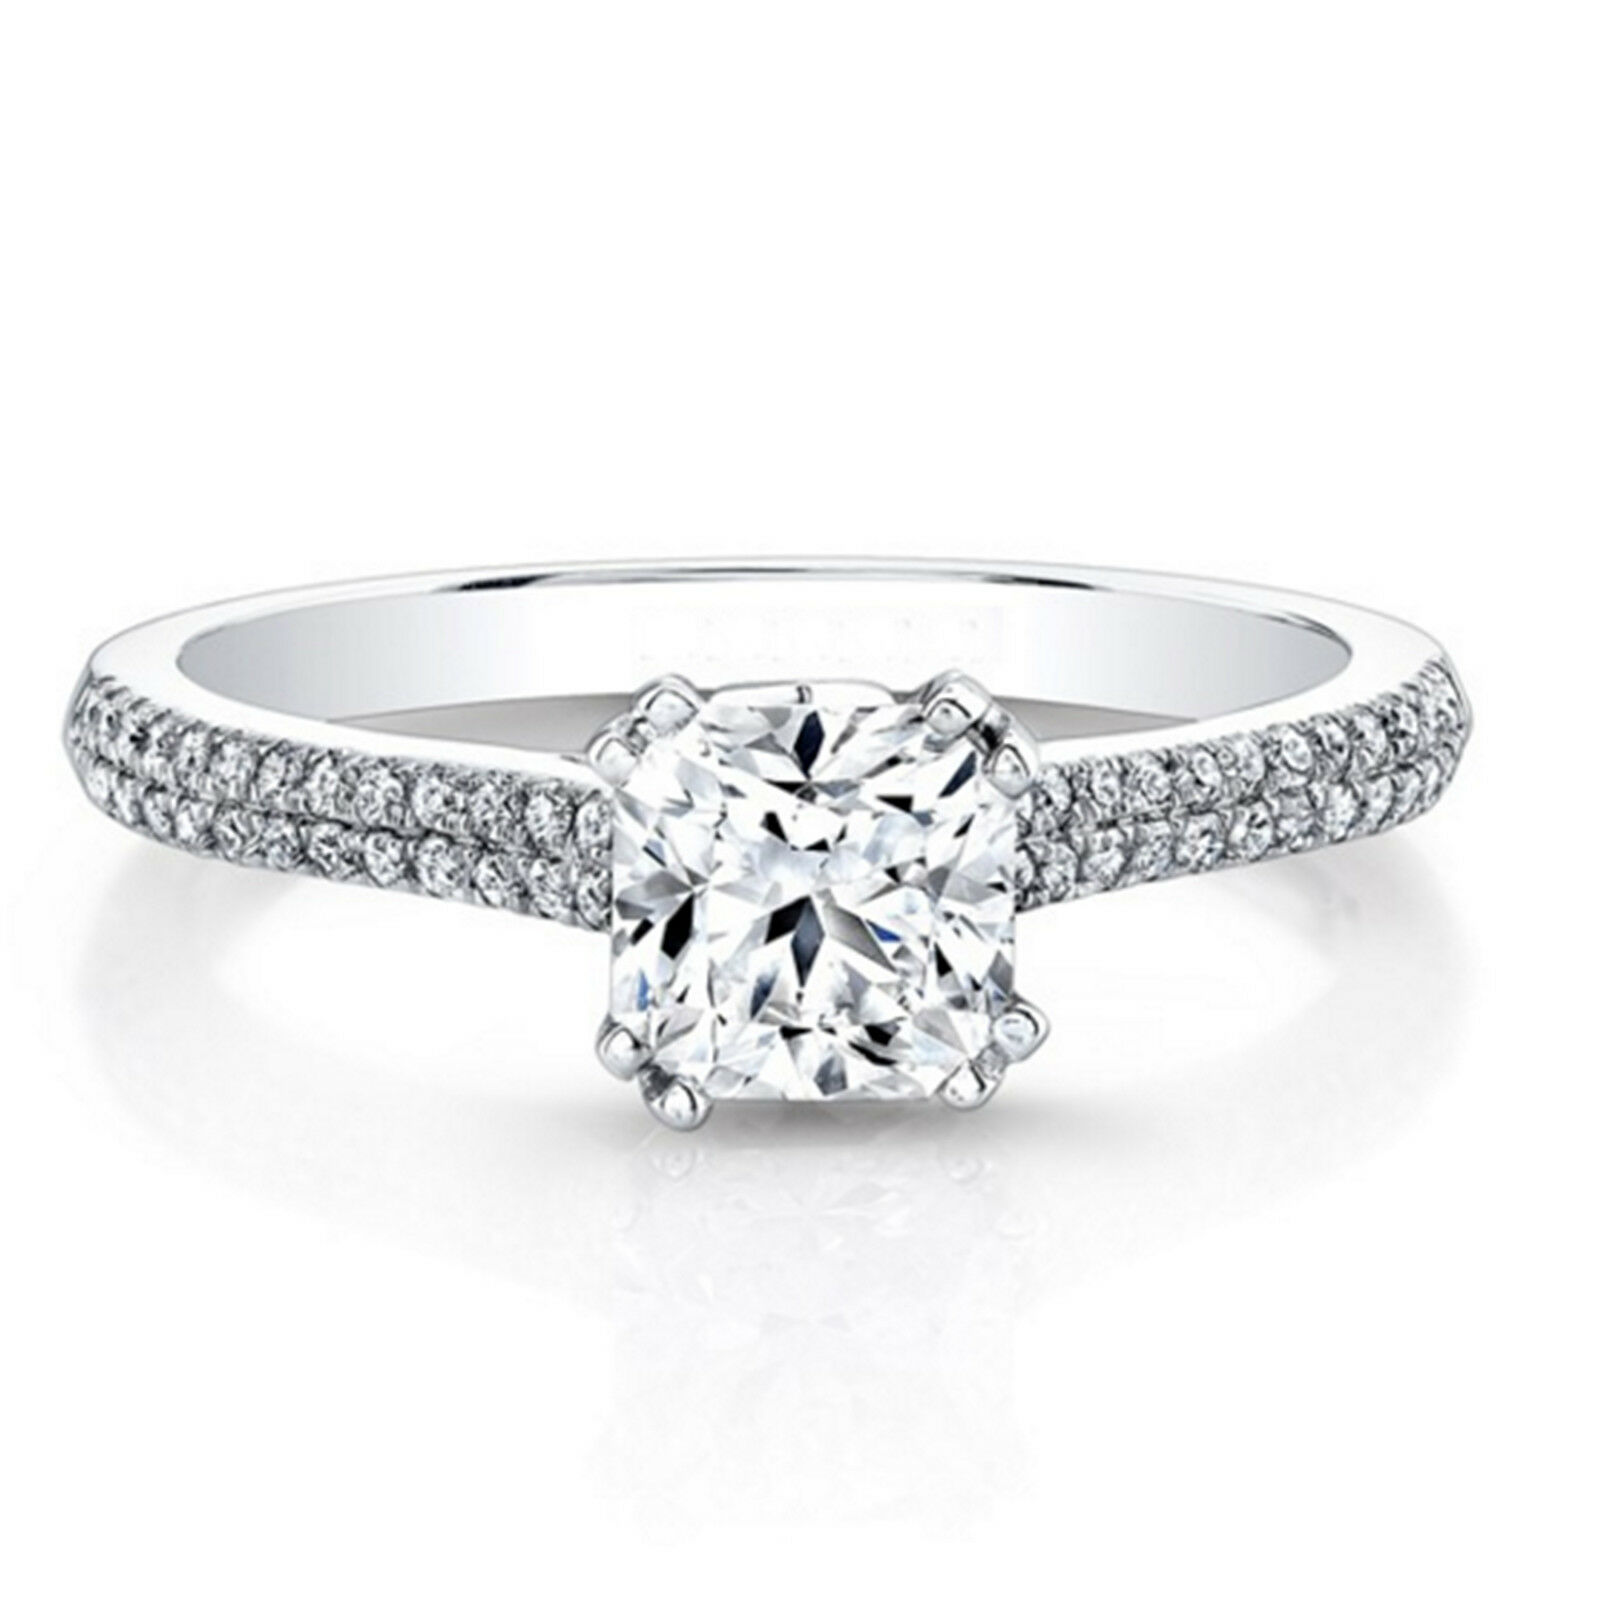 0.61 Ct Cushion Real Diamond Engagement Rings 14K Solid White gold Size 5.5 6 7